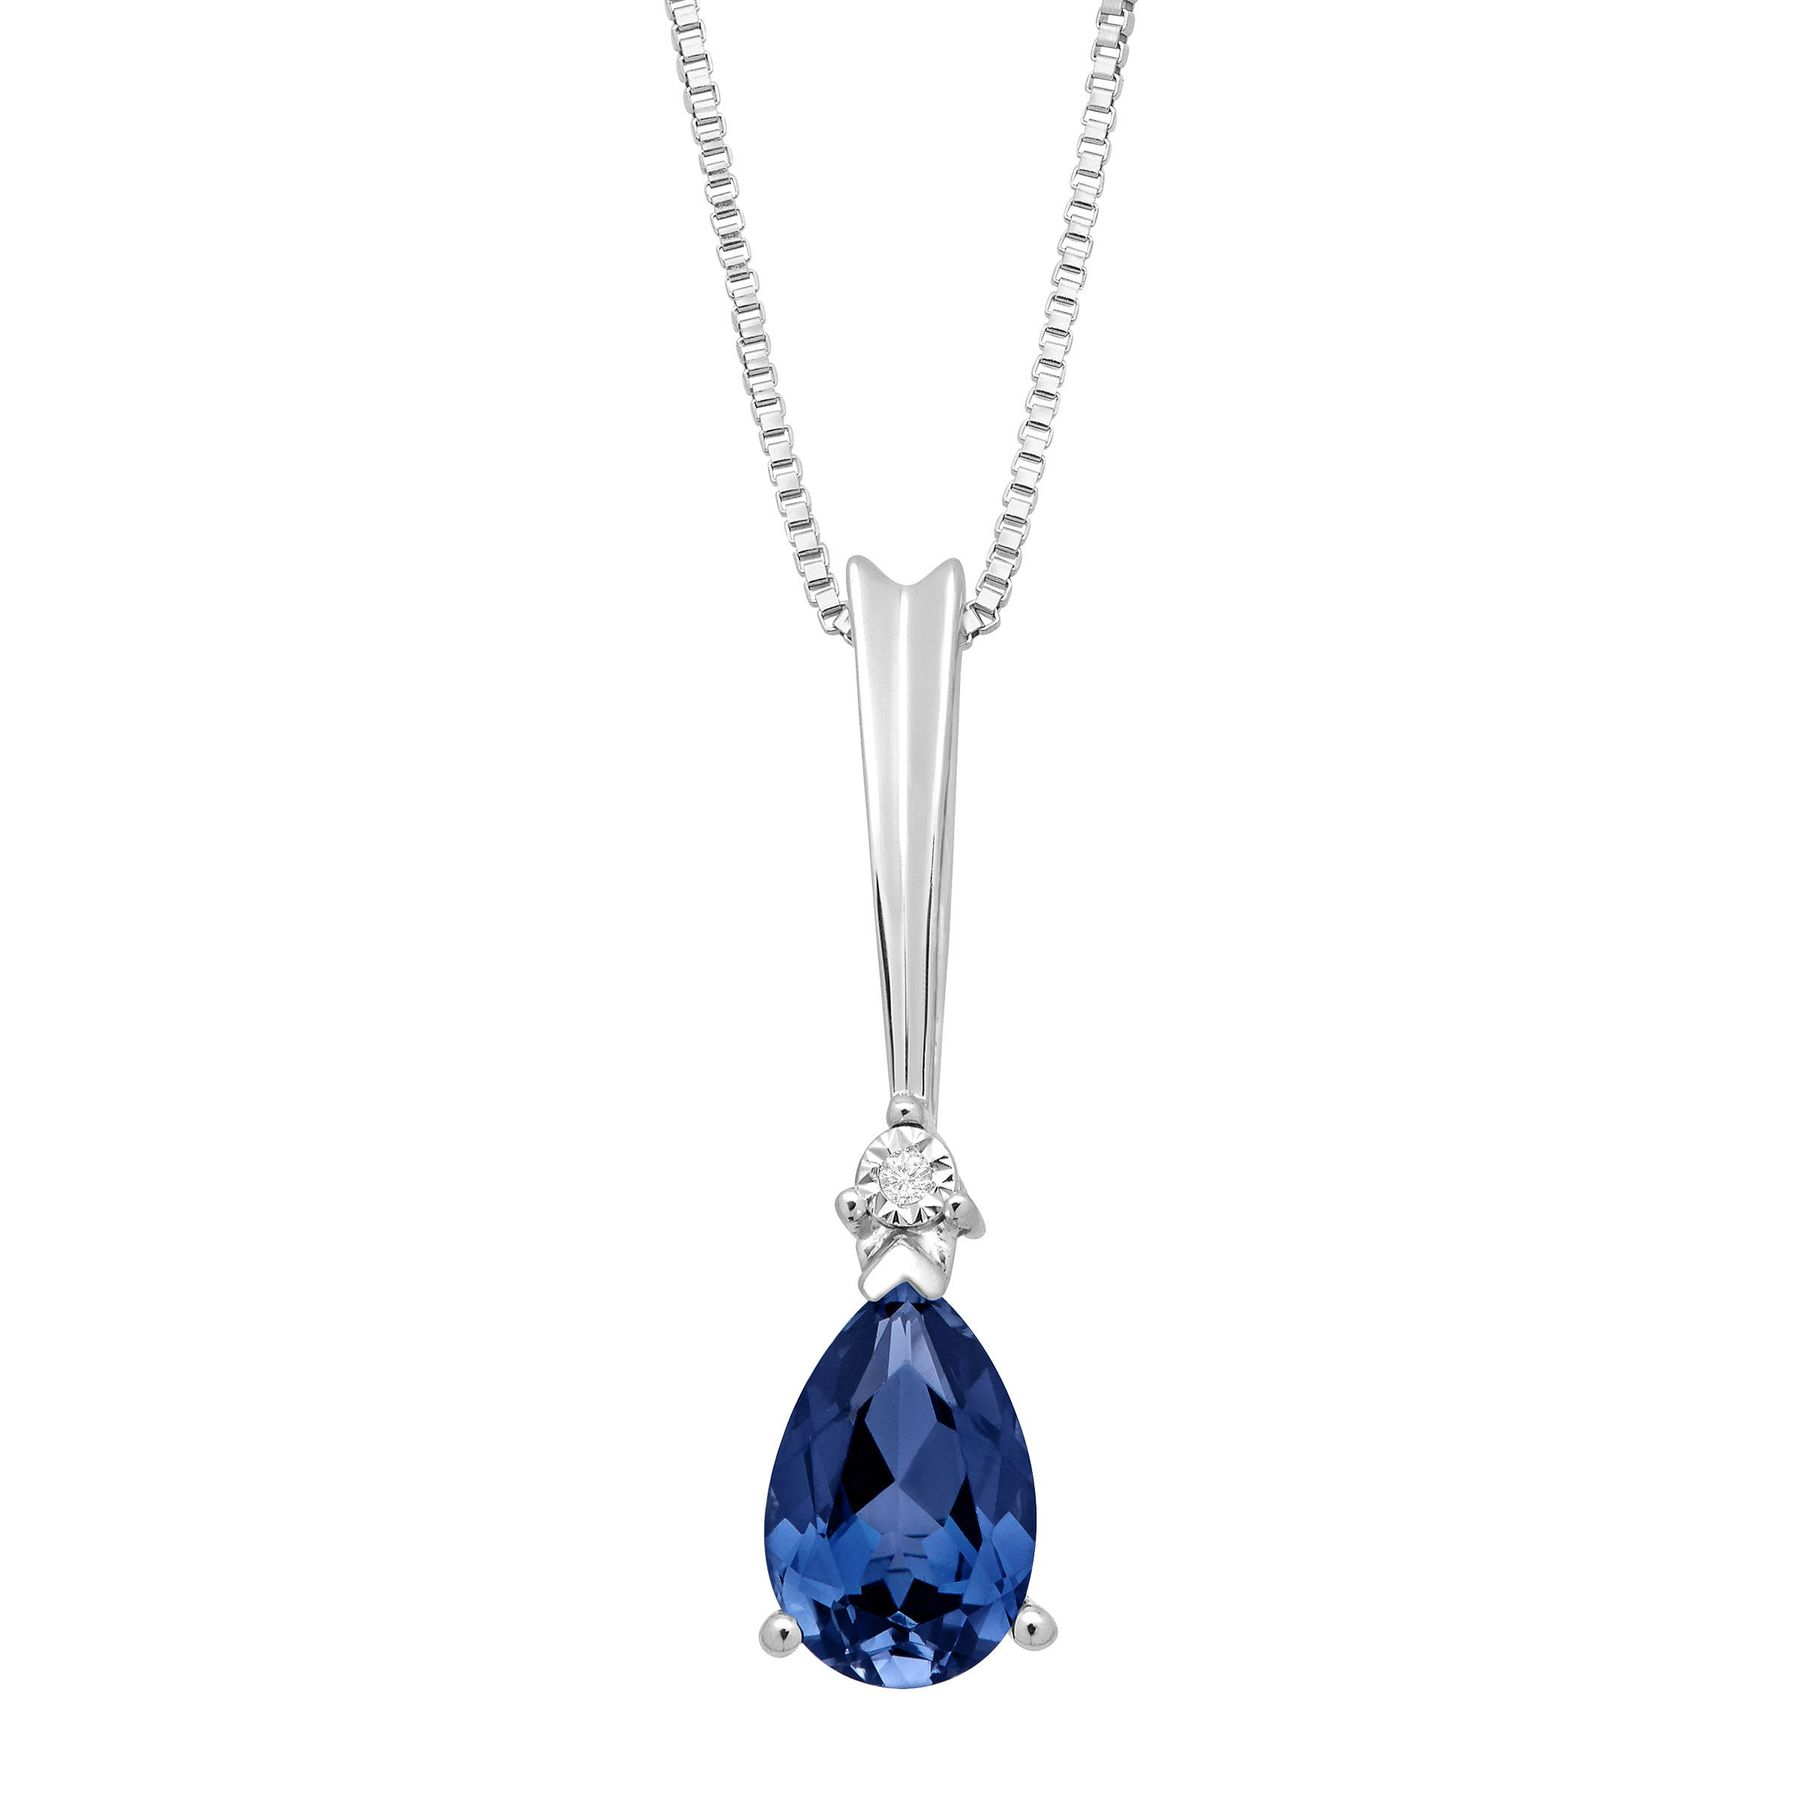 pendants sukhmani designs shop diamond necklace from necklaces in sapphire albuquerque